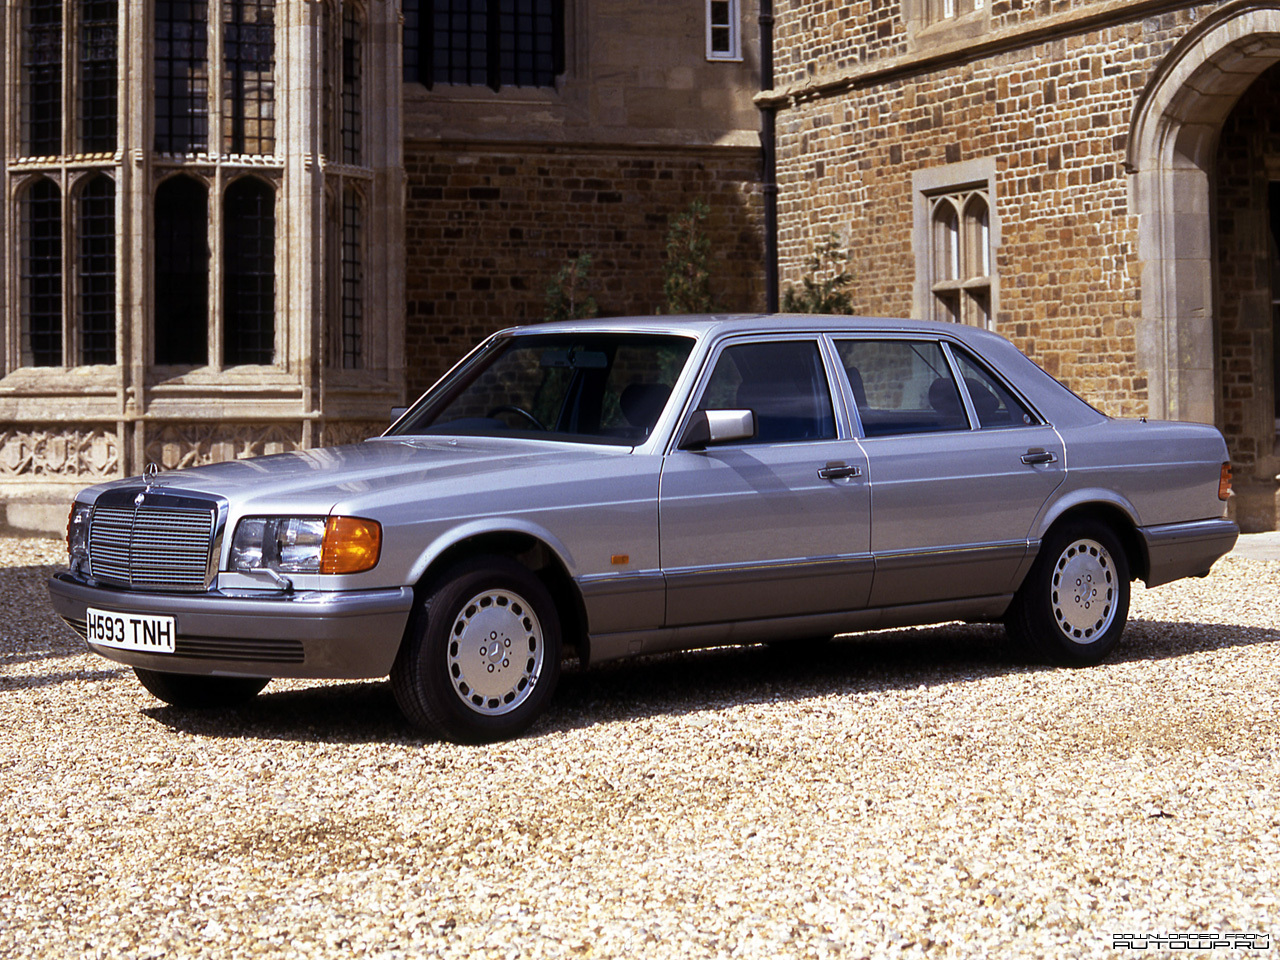 Mercedes benz s class w126 photos photo gallery page 3 for Mercedes benz south